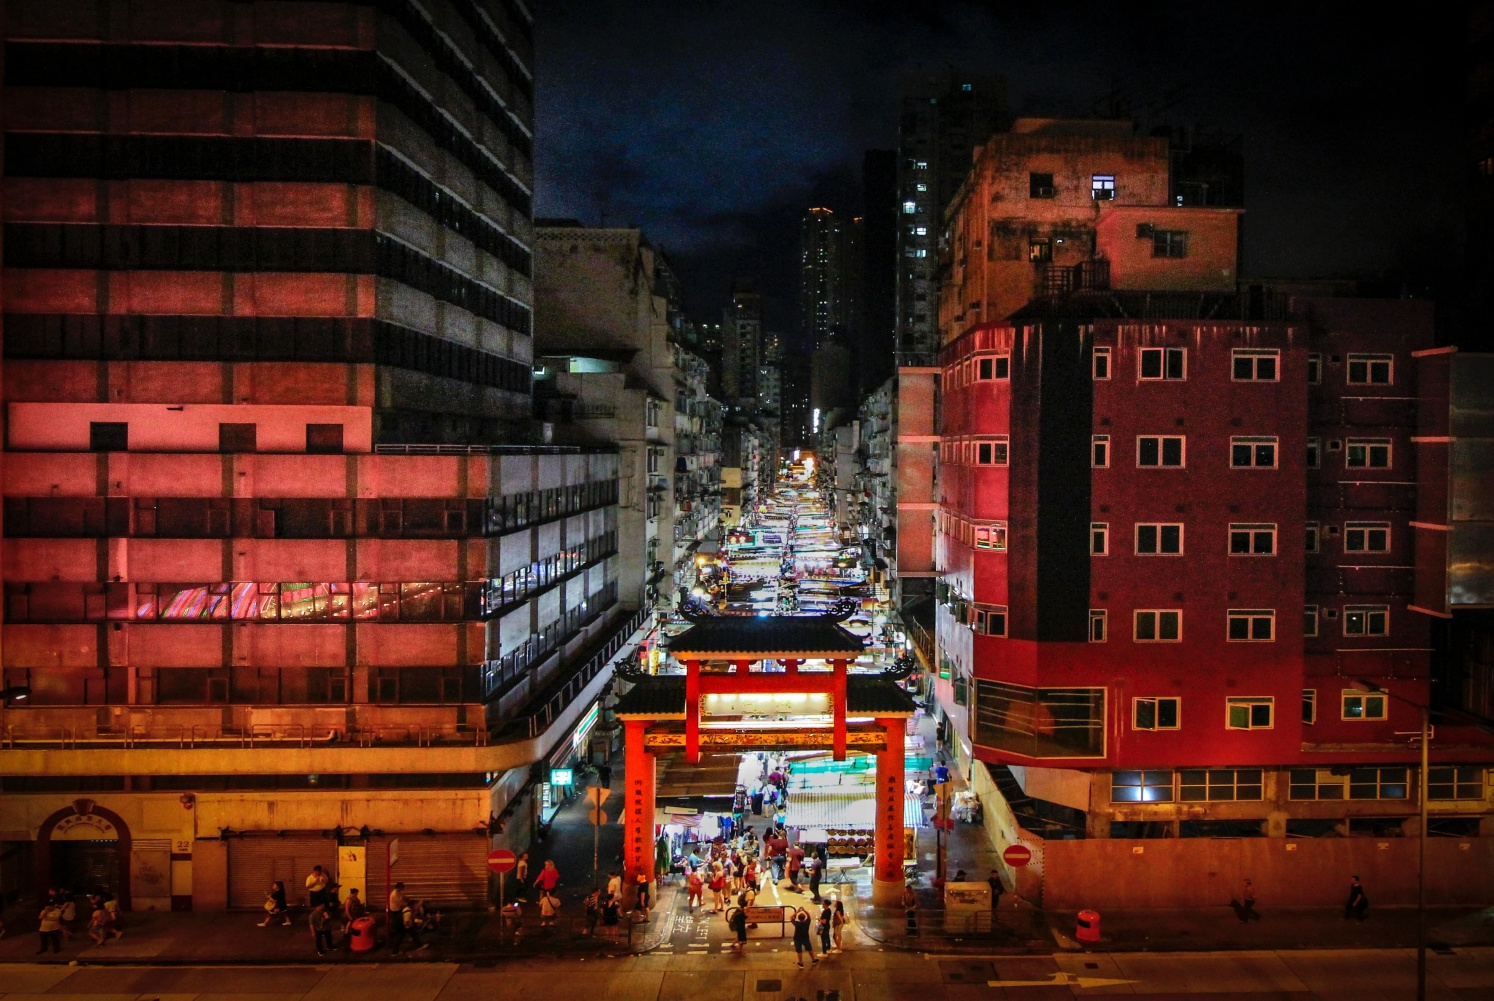 Days 1-3: Flying & Hong Kong - Fly to Hong Kong and marvel at the iconic skyline from afar or feel alive in the lucid buzz of its colourful streets. Visit one of the unmissable night markets to get your trip started in style.